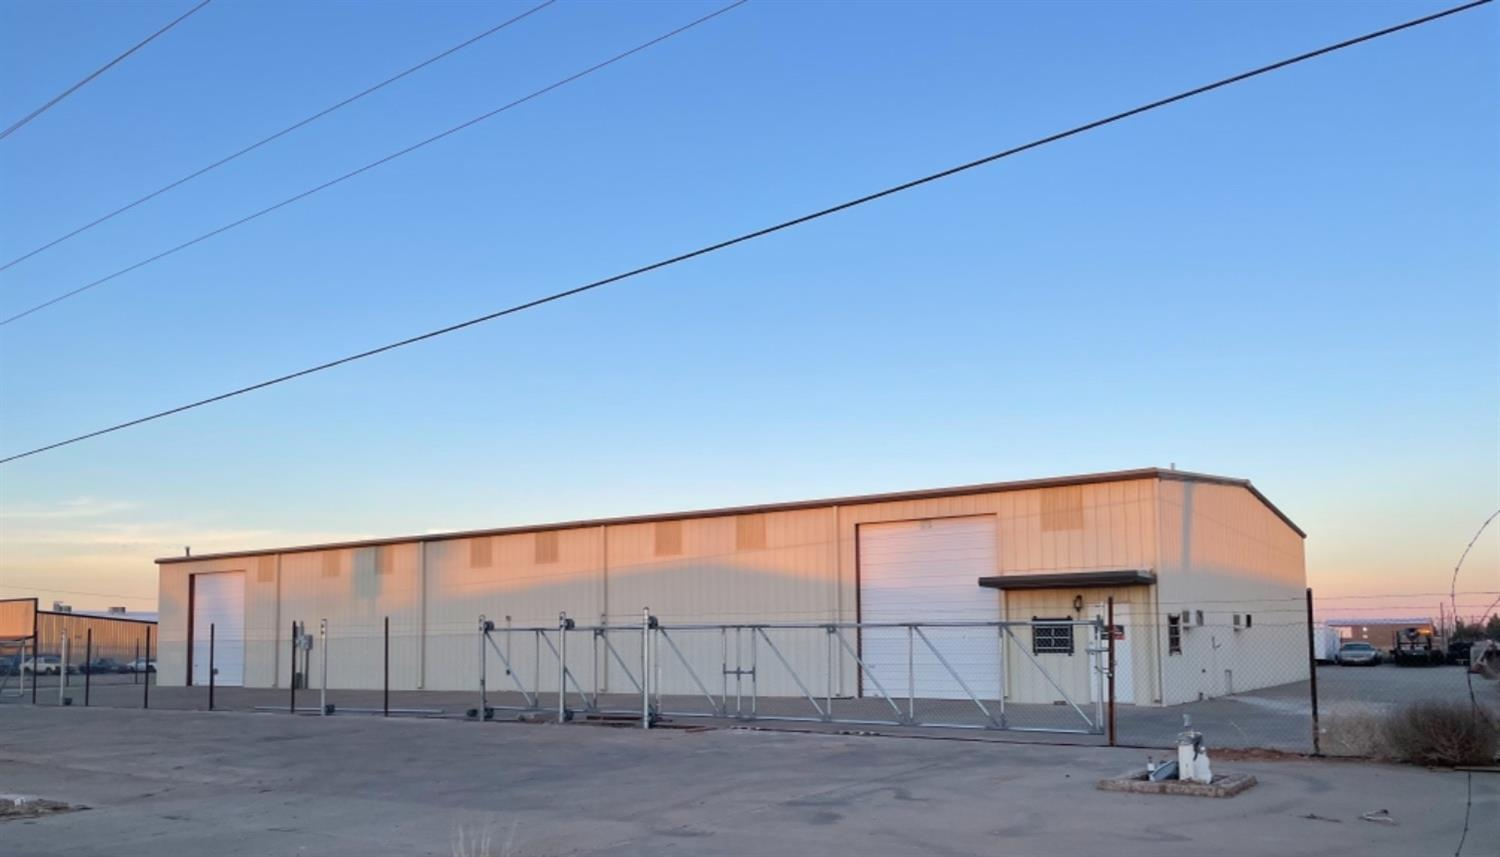 Great 9,300sf warehouse/shop with 2 office spaces and bathroom. 18f side walls, 5 overhead doors, and  2 bays with their own bathroom.  The yard is concrete,  cyclone fence with 2 new electric gates. Outside of city limits, septic and new well. Located on Hwy 87 (I-27). Car lift and air compressor can stay with good offer.